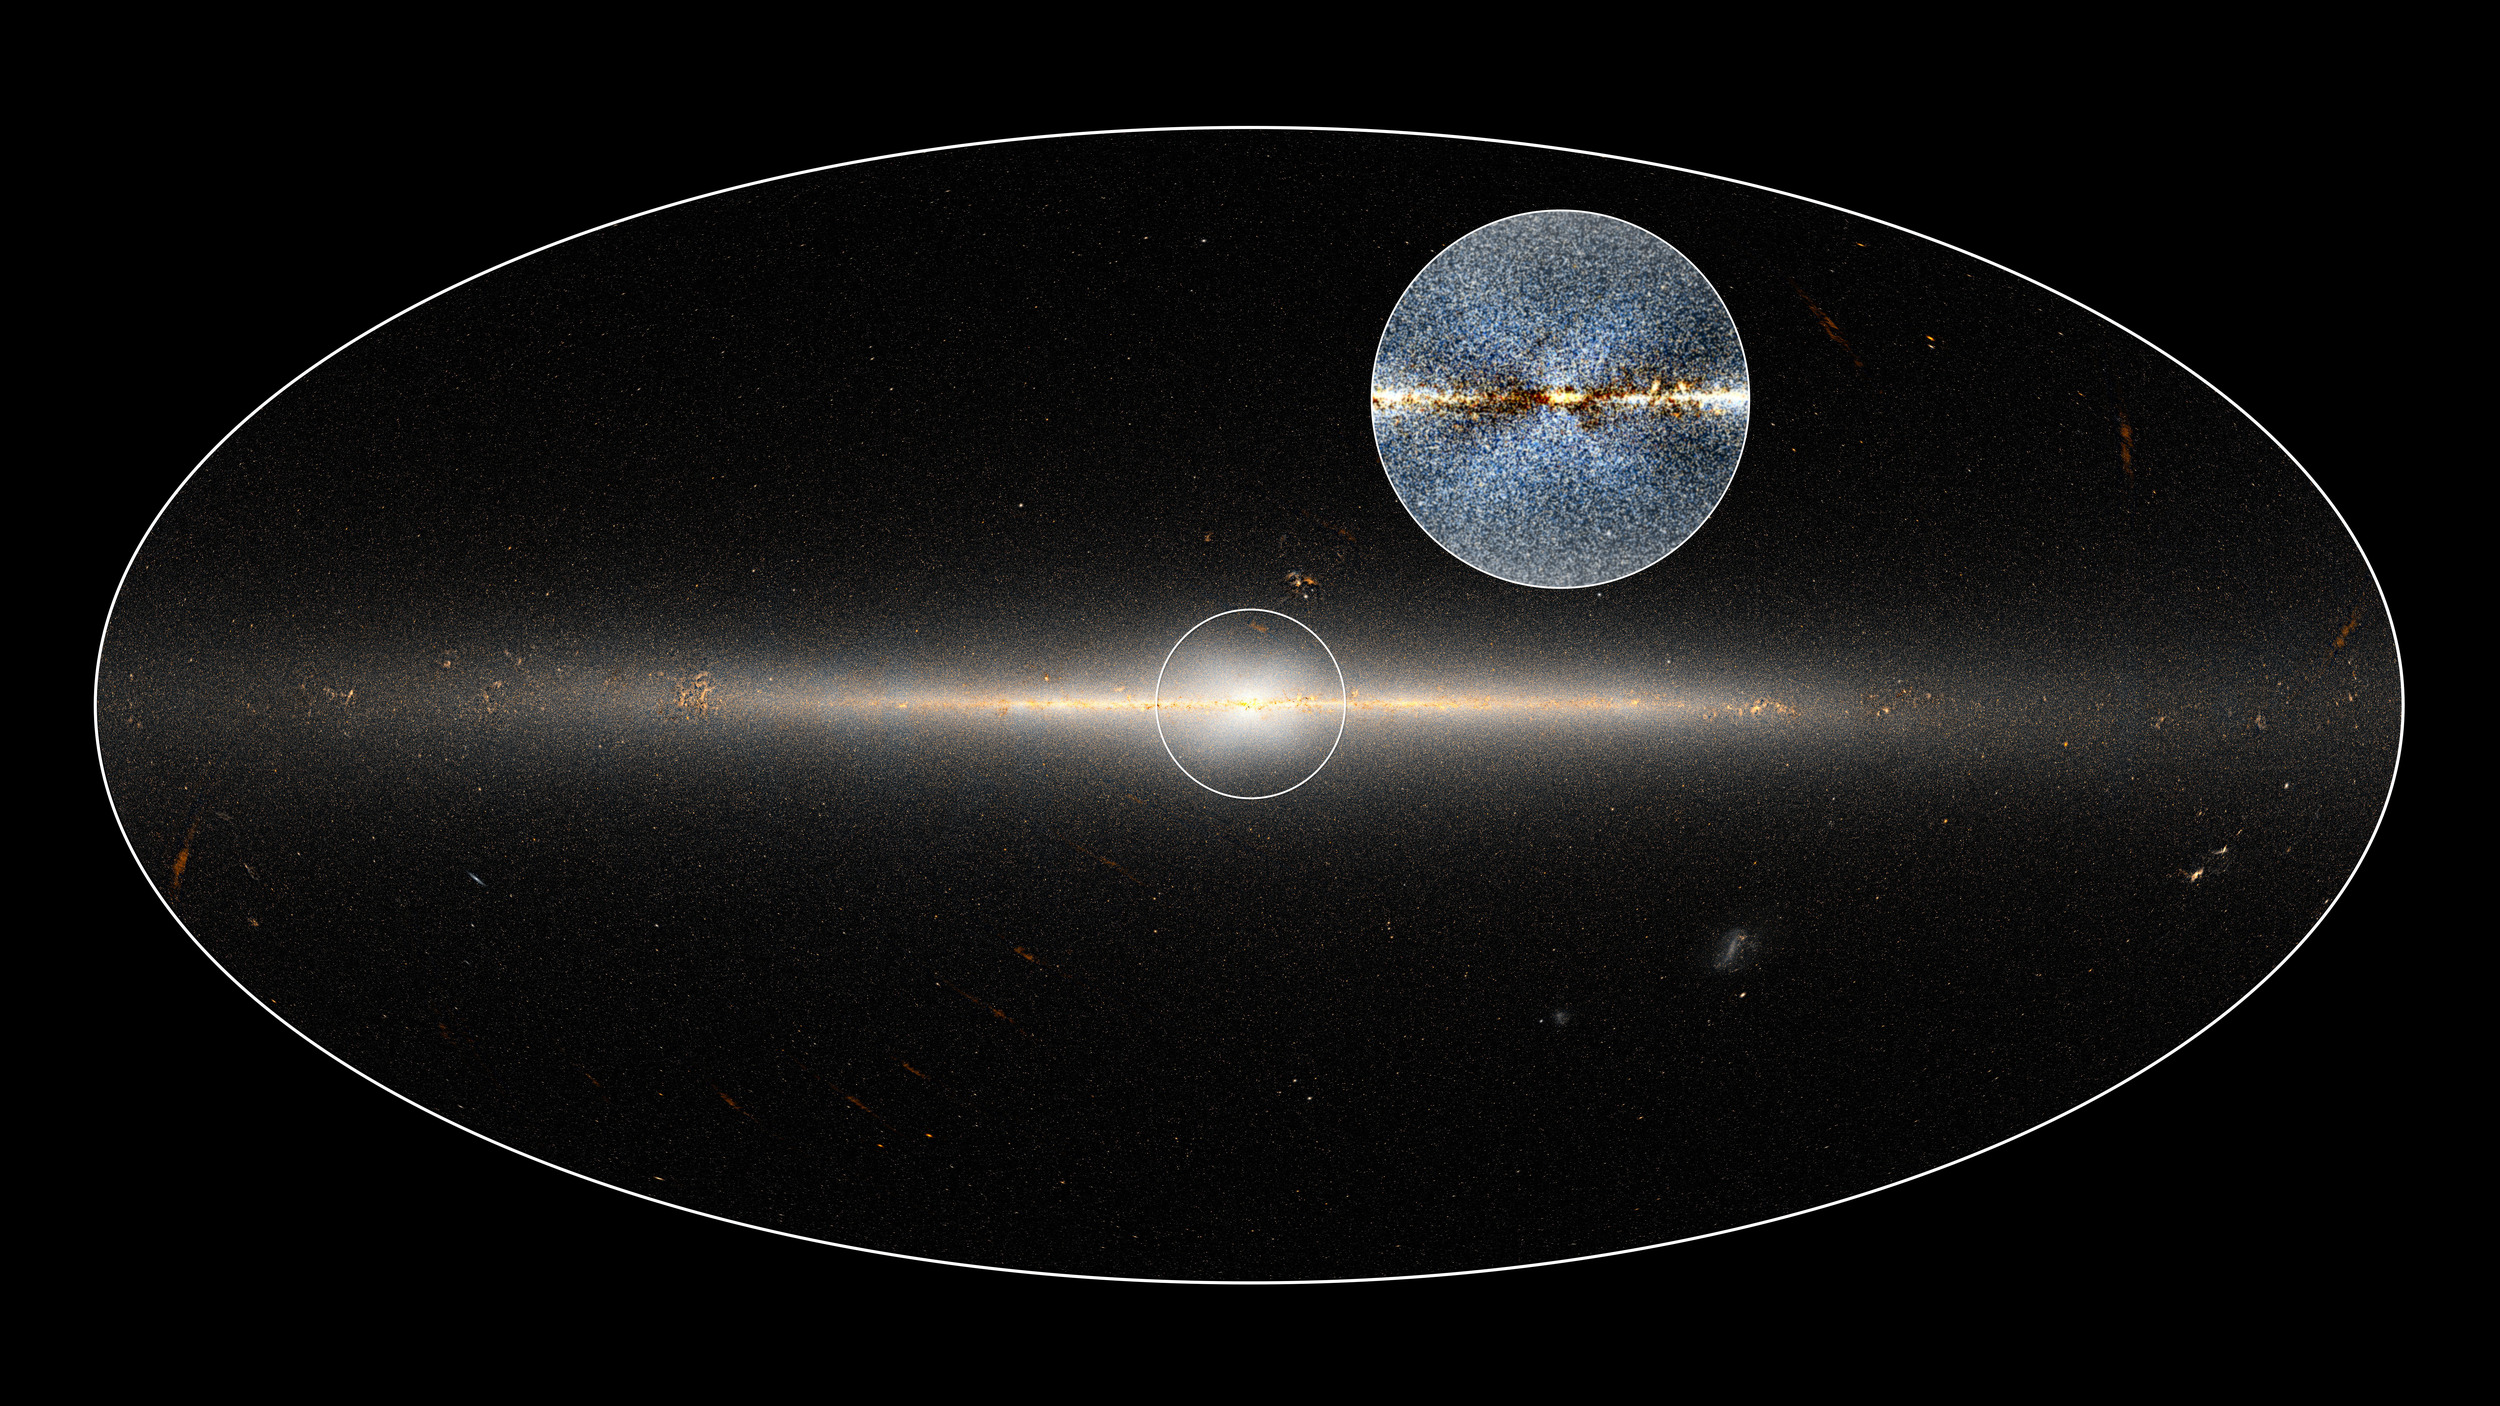 In 2010, NASA's Wide-field Infrared Survey Explorer (WISE) mission observed the entire sky twice. Astronomers used these data to point out the X-shaped structure in the bulge of the Milky Way, contained in the small circle at center, as well as the inset image. The circled central portion covers roughly the area of sky that would be blocked by a basketball when held out at arm's length. – Image Credits: NASA/JPL-Caltech/D.Lang